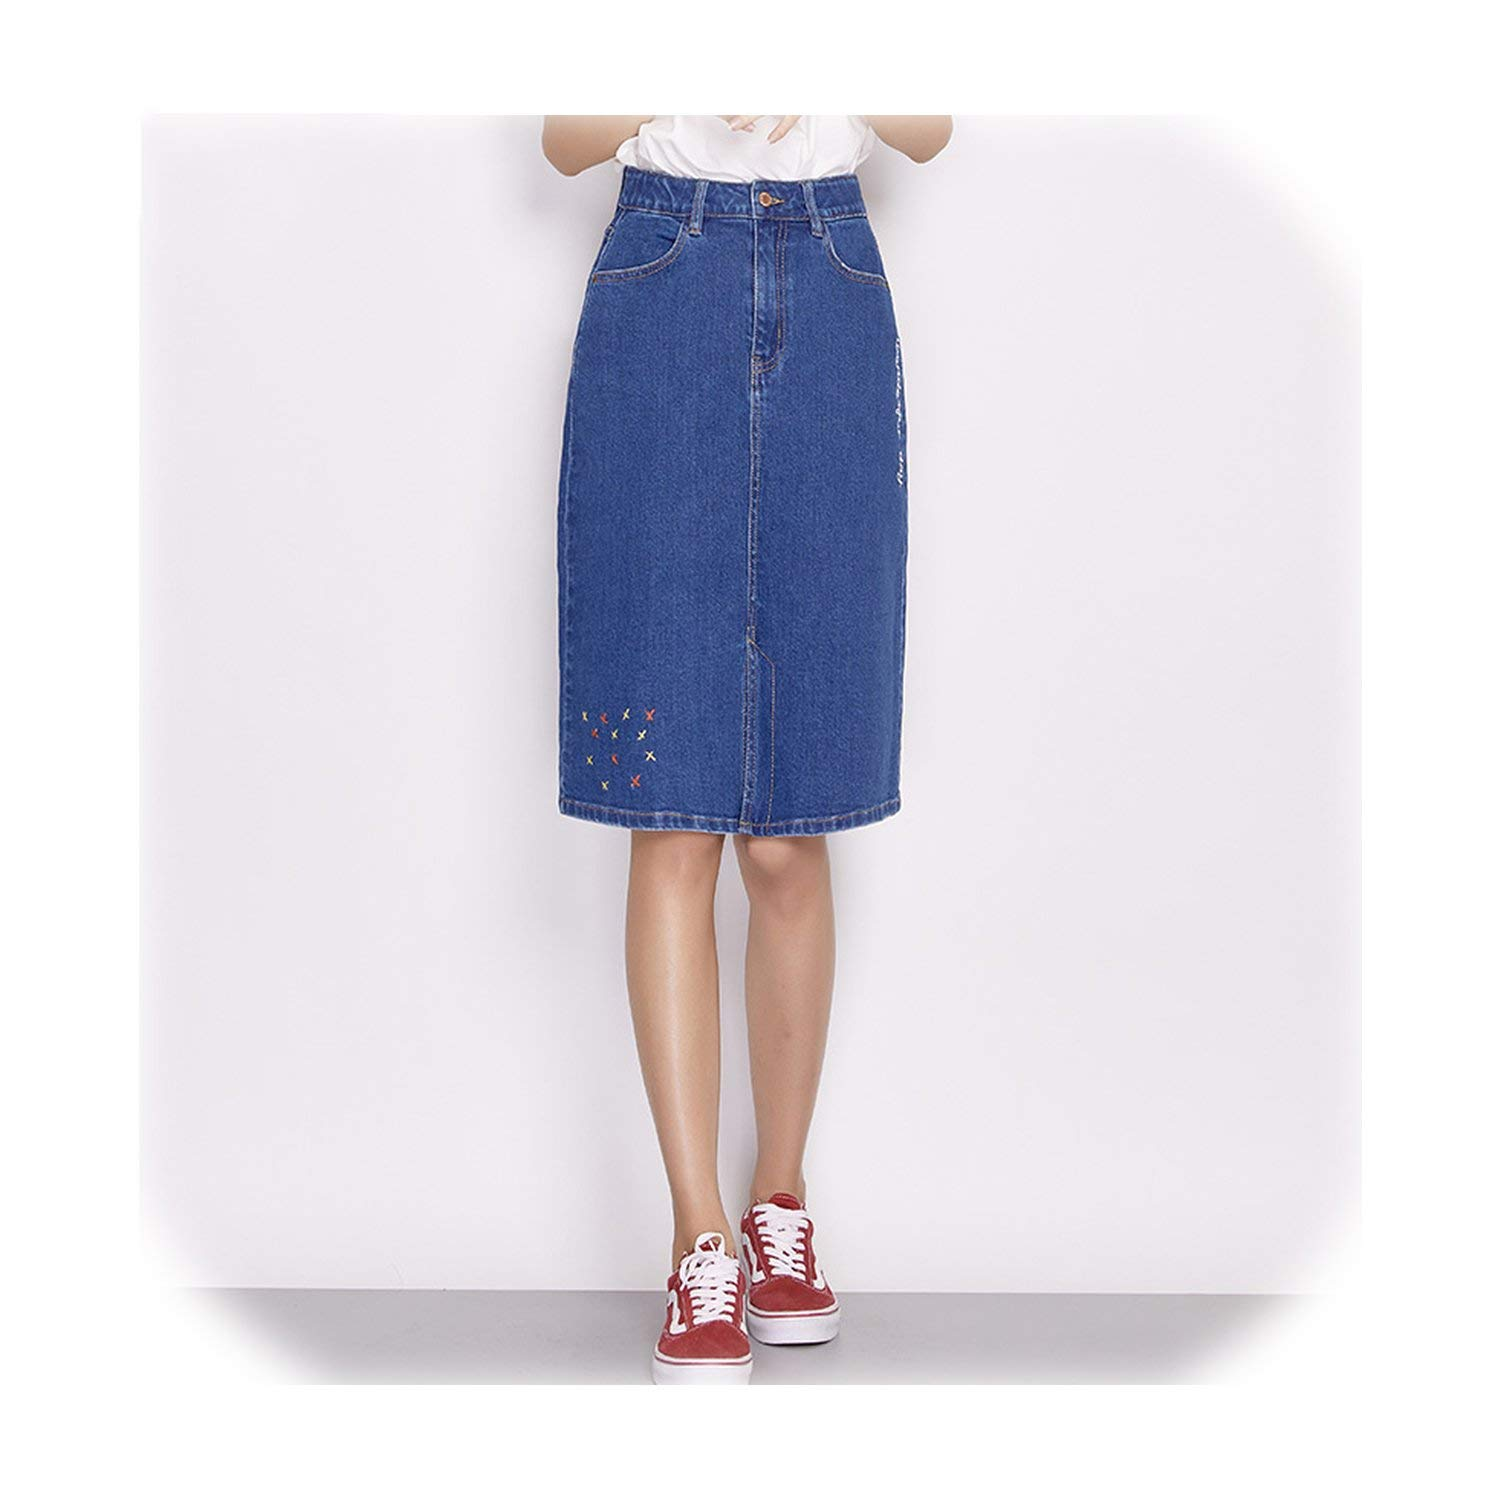 color Fairly Spring and Summer KneeLength Embroidery Denim Skirt Women Skirt Plus Size Fashion bluee Aline 6850